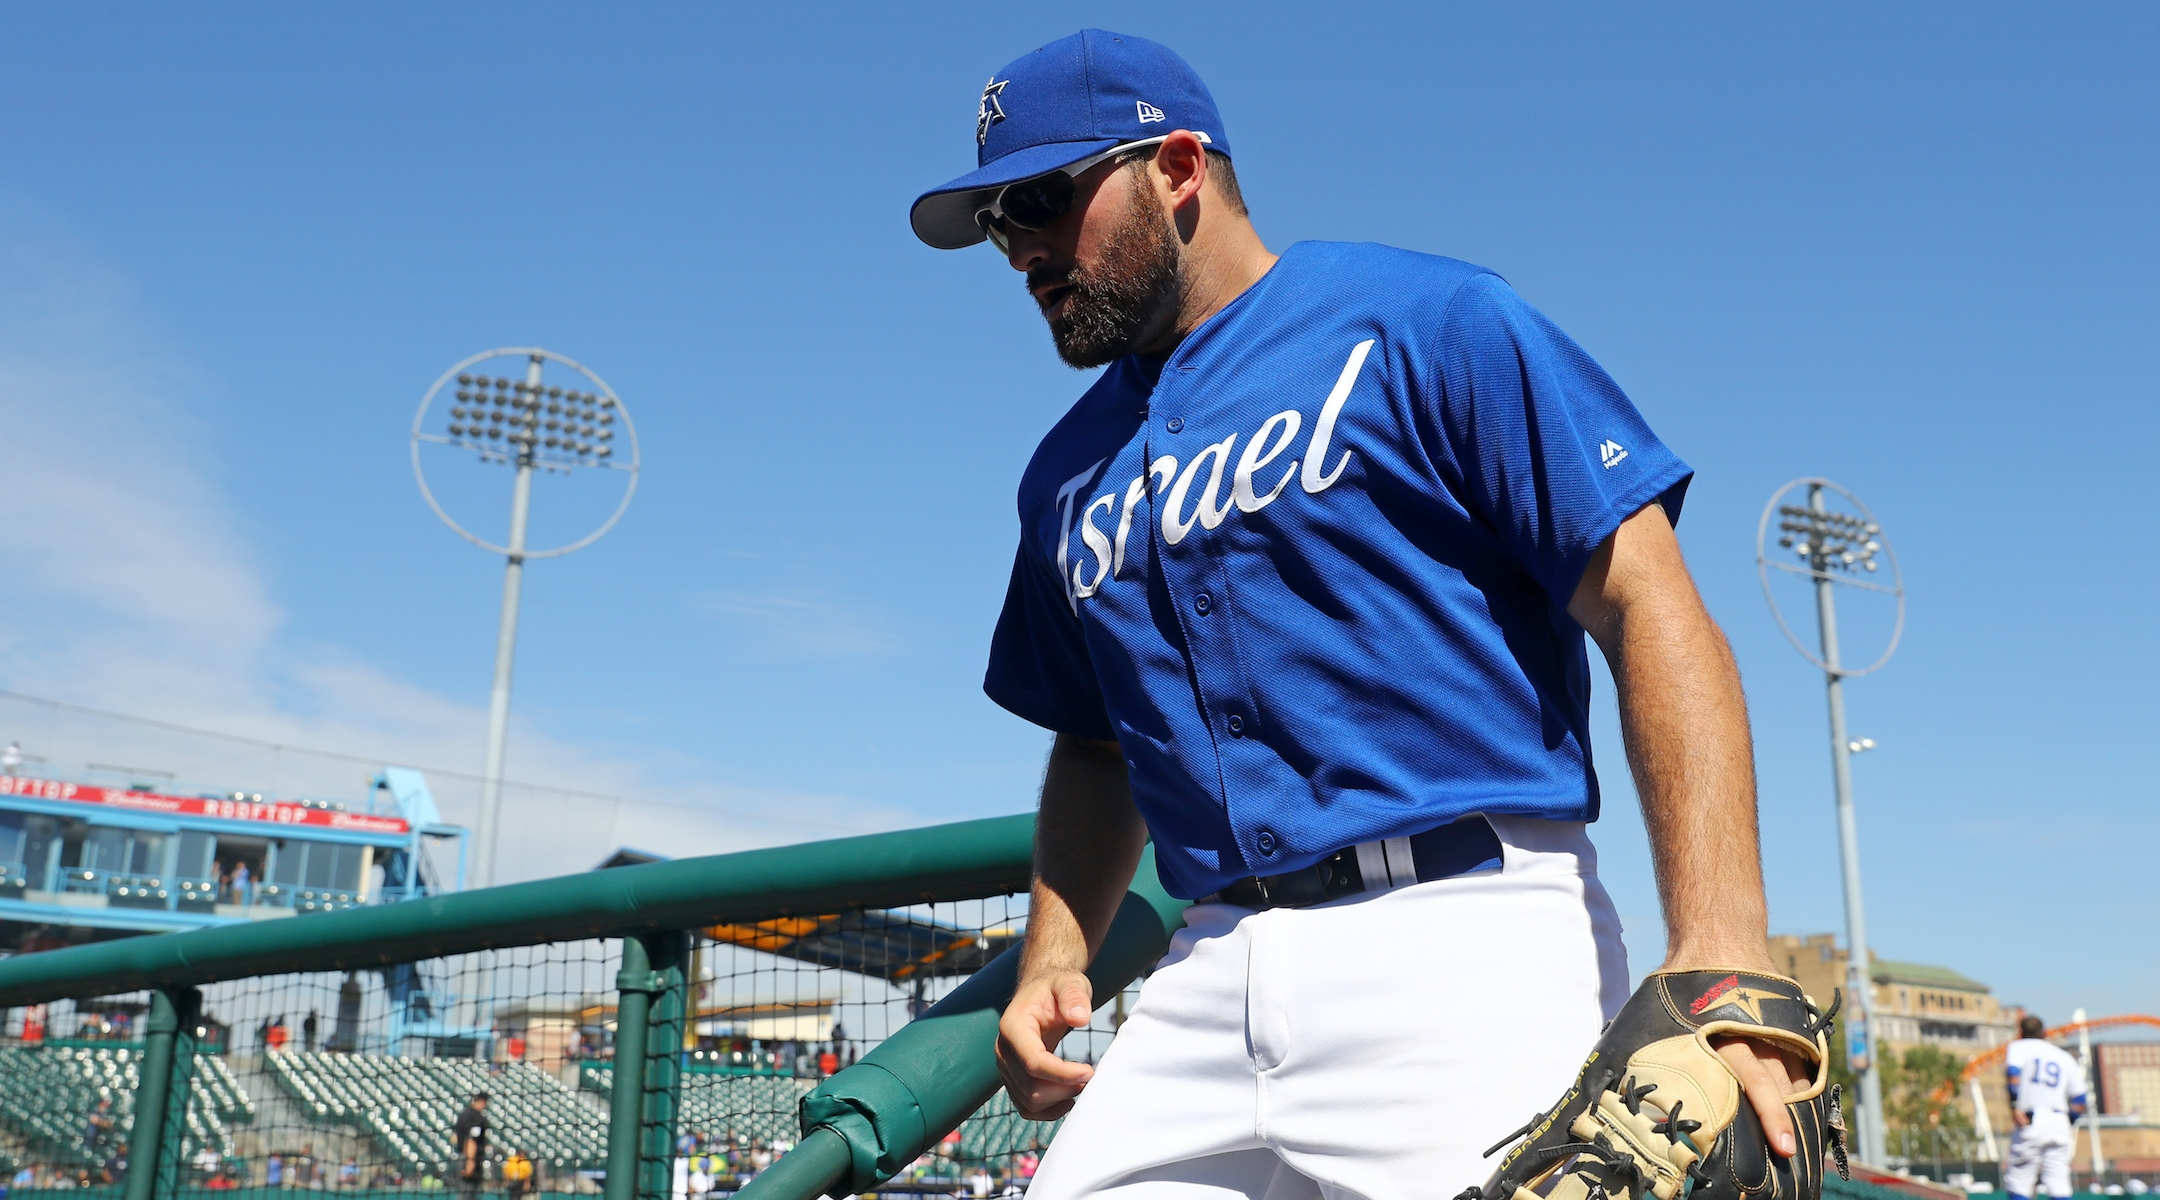 Former Major League player Cody Decker says anti-Semitism is 'rampant' in pro baseball